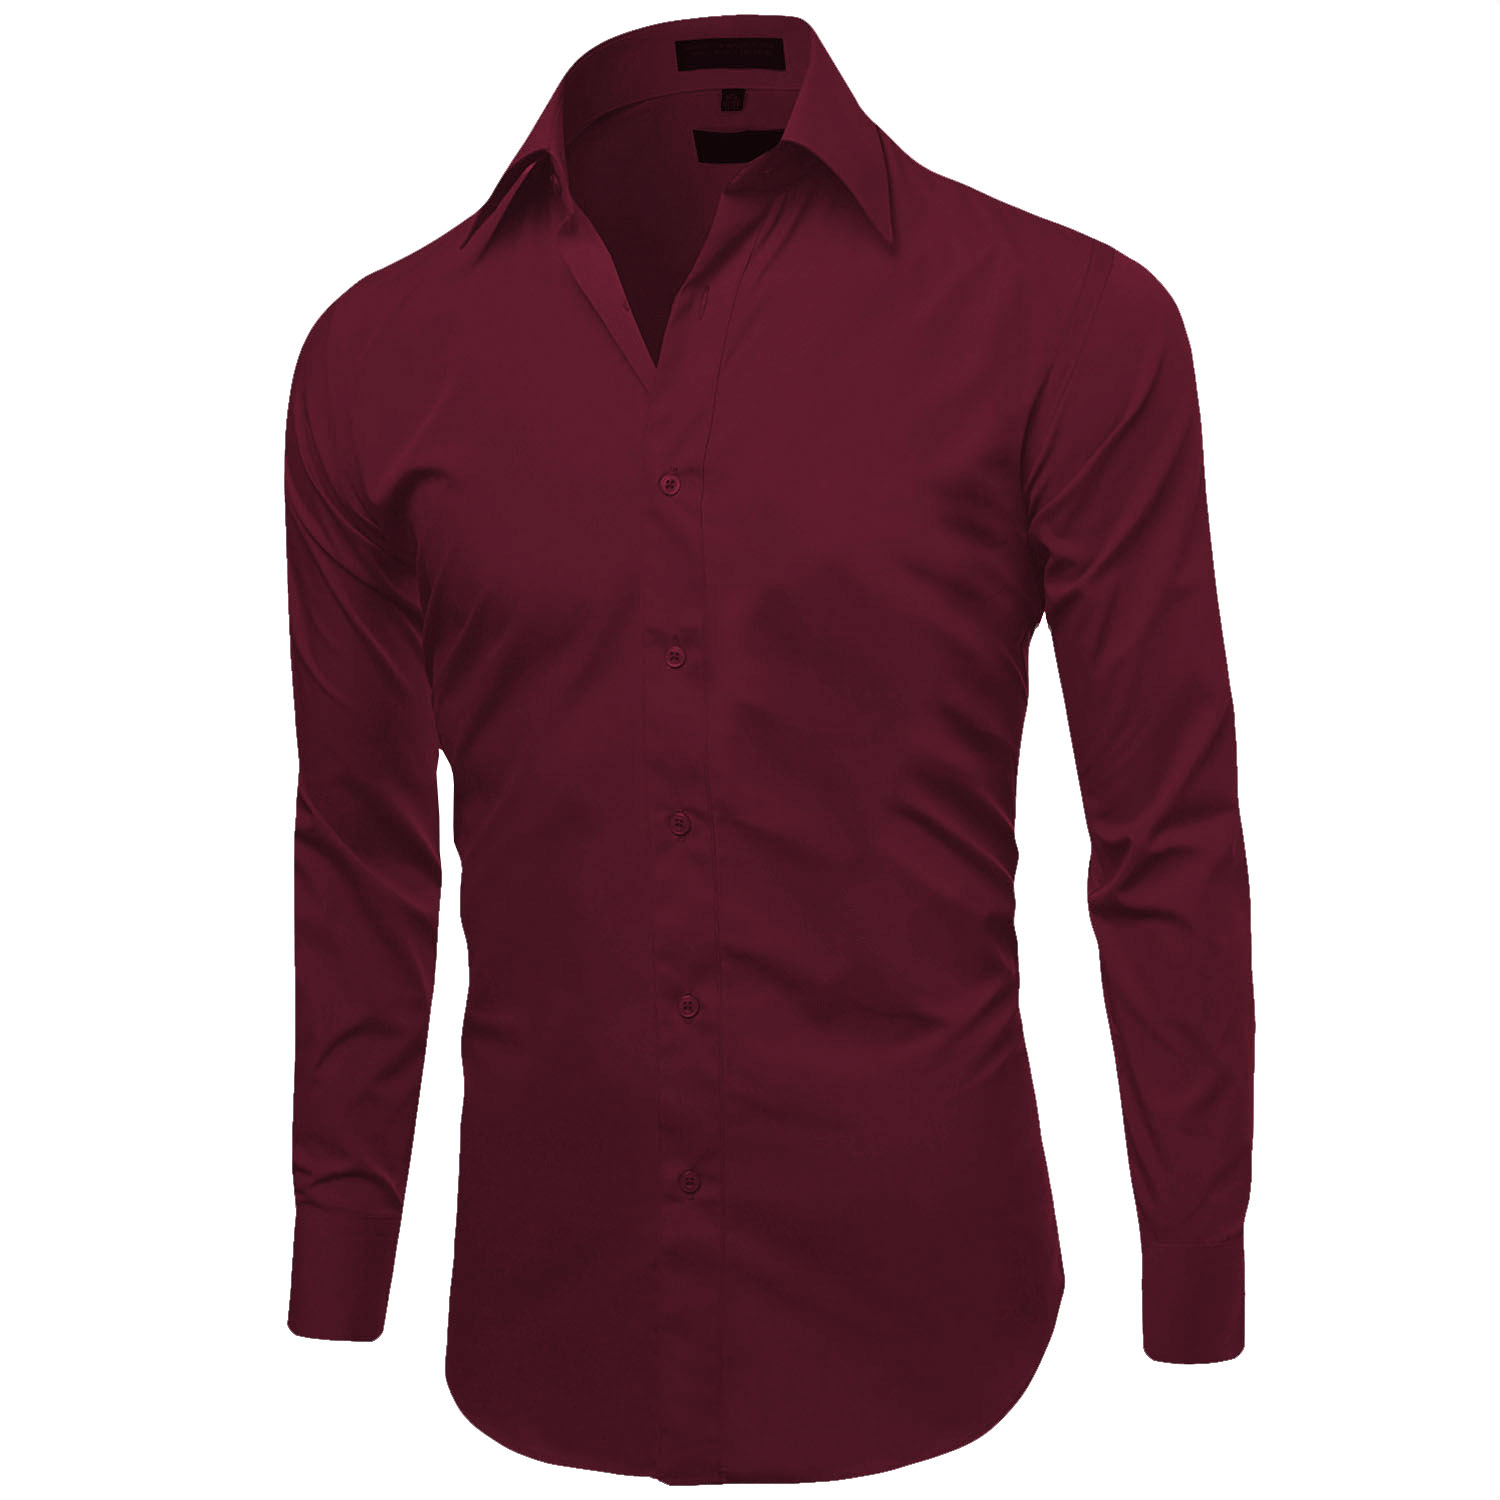 Omega-Italy-Men-039-s-Premium-Slim-Fit-Button-Up-Long-Sleeve-Solid-Color-Dress-Shirt thumbnail 108